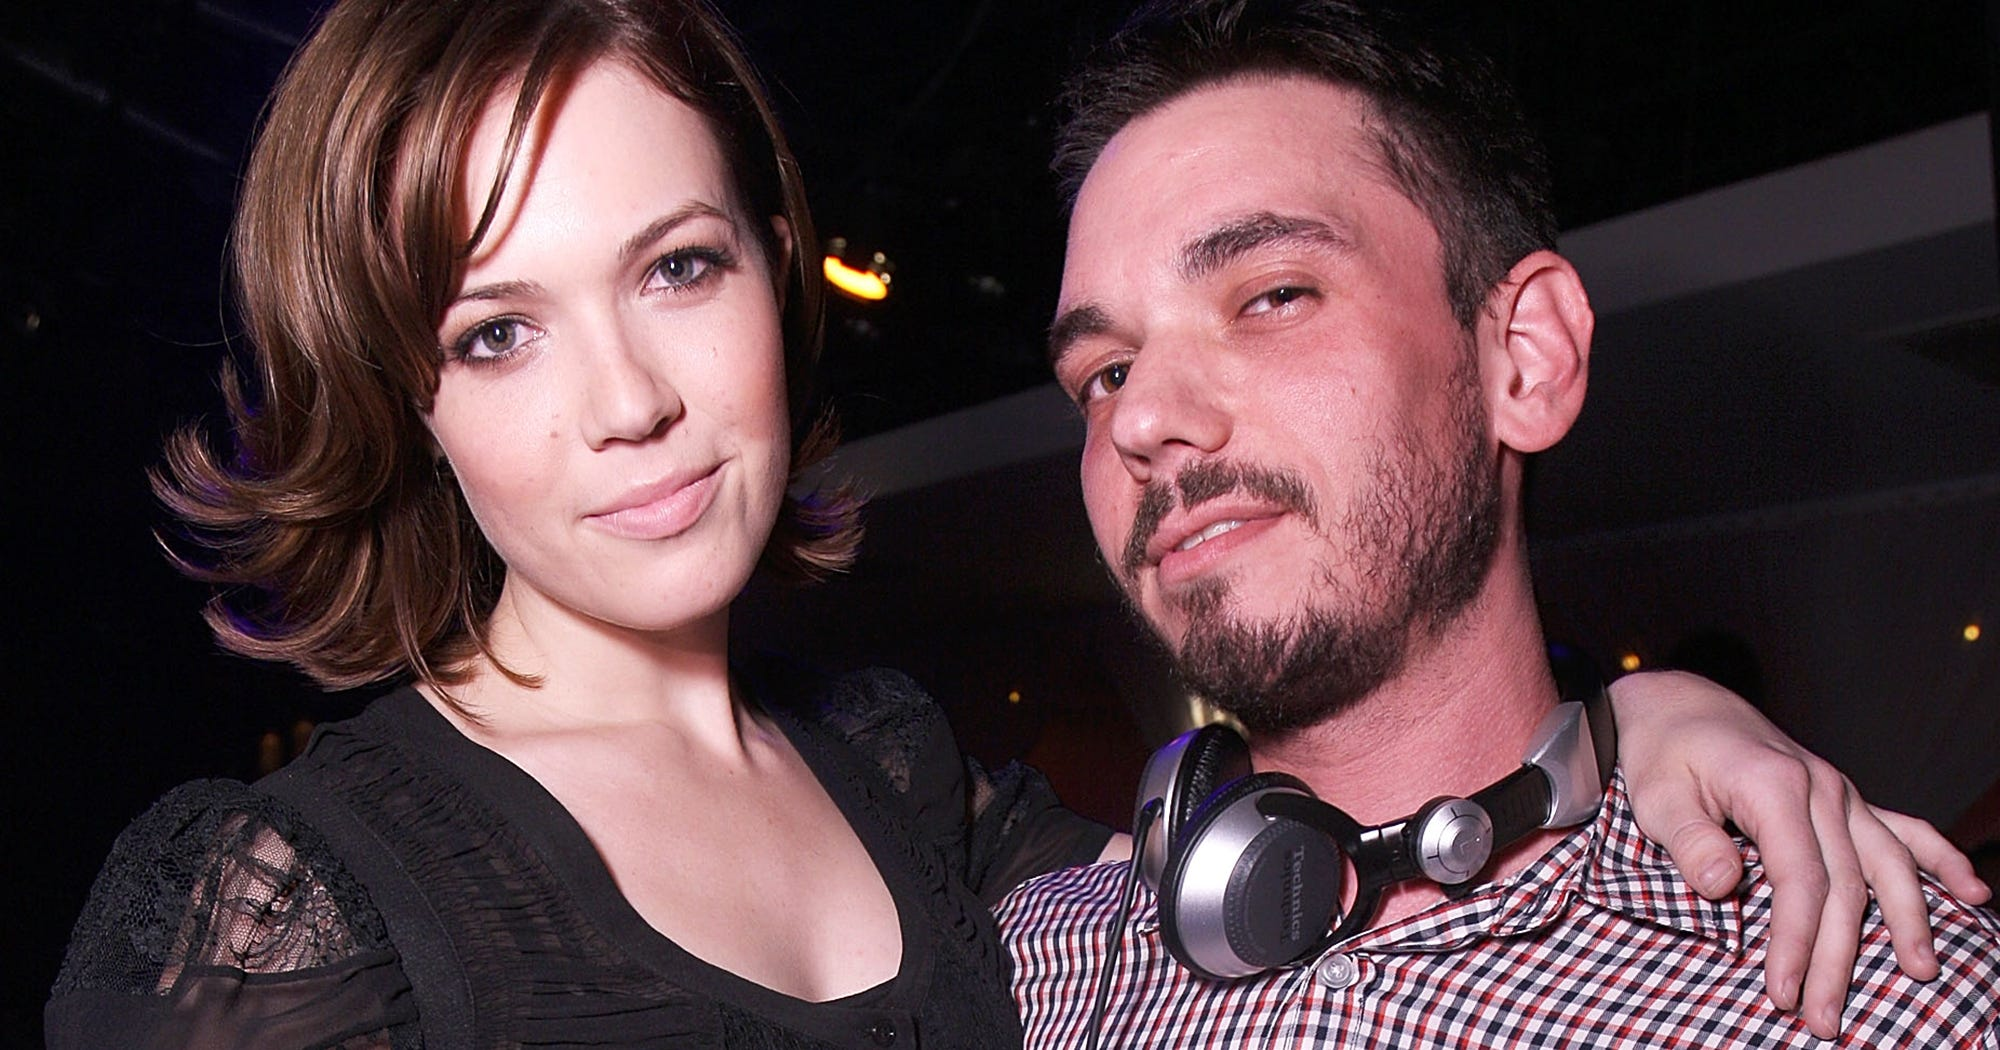 Mandy Moore Shares Tribute To Late Ex DJ AM After Death